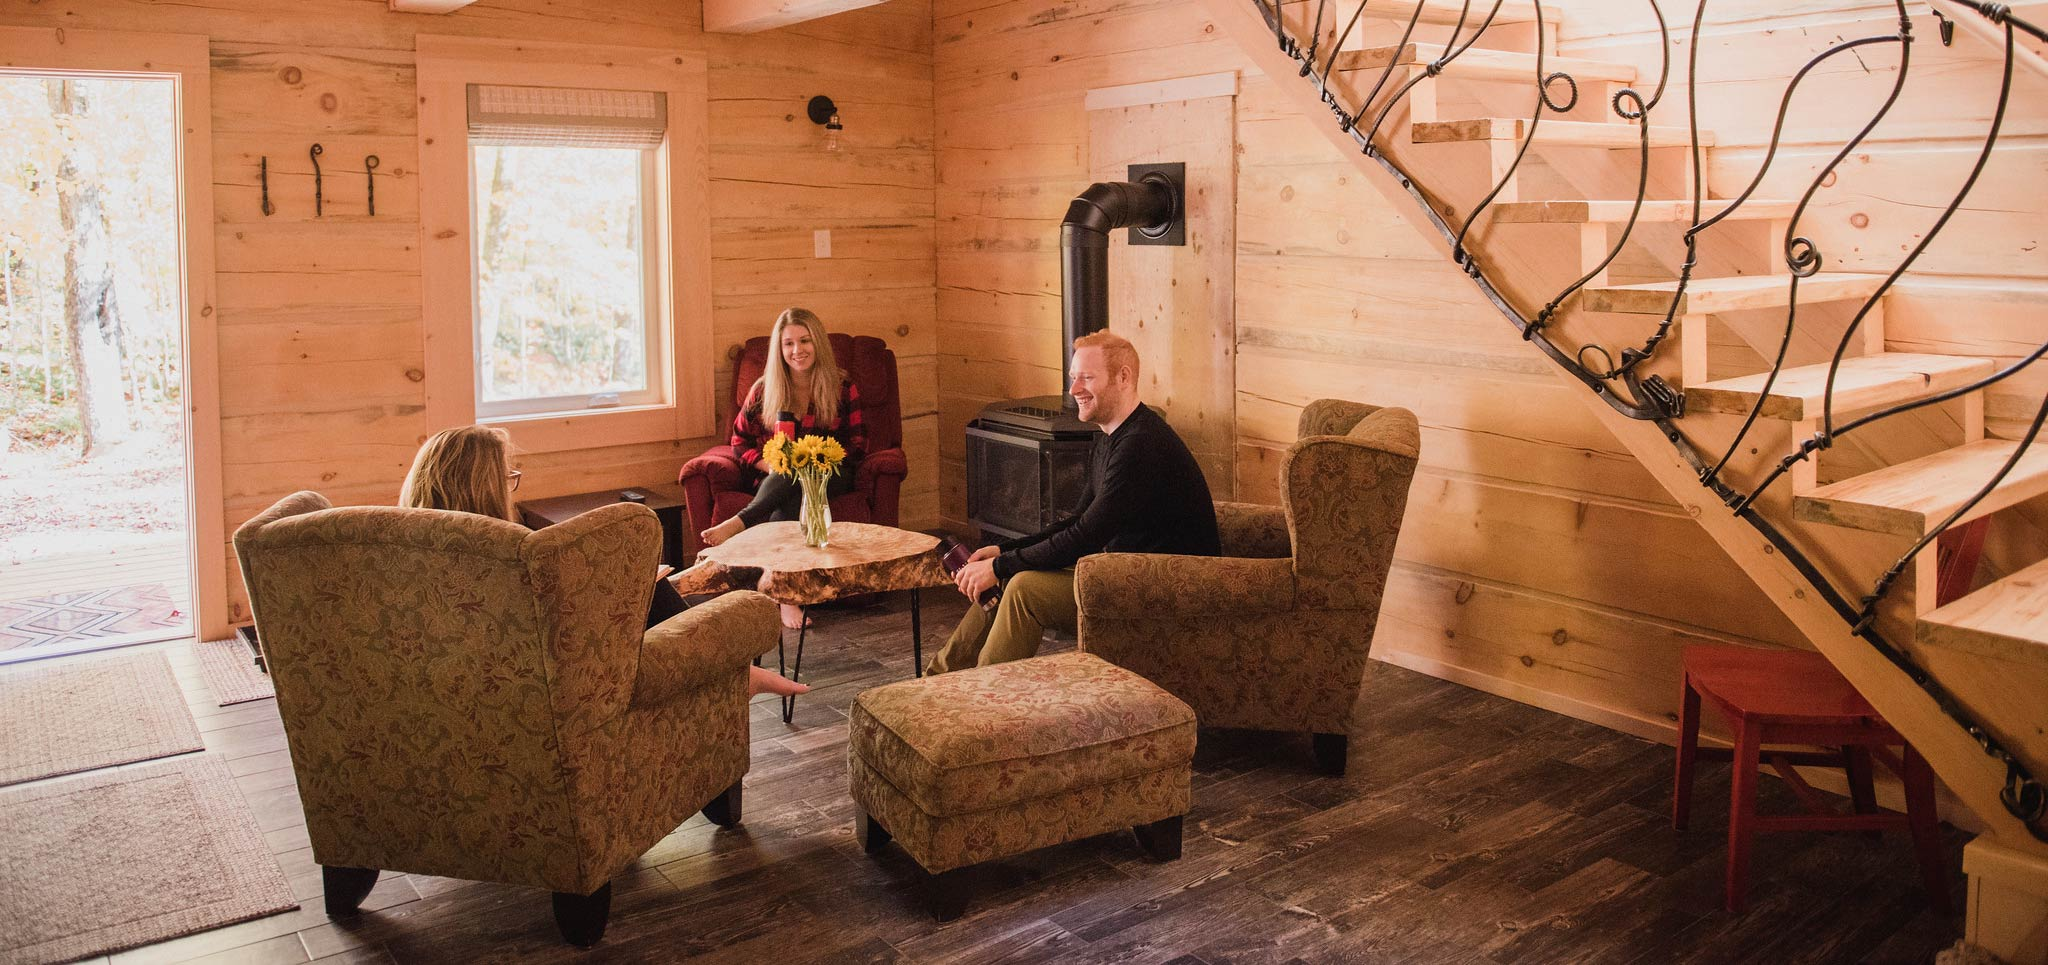 Friendly discussion by the fire in a modern log cabin